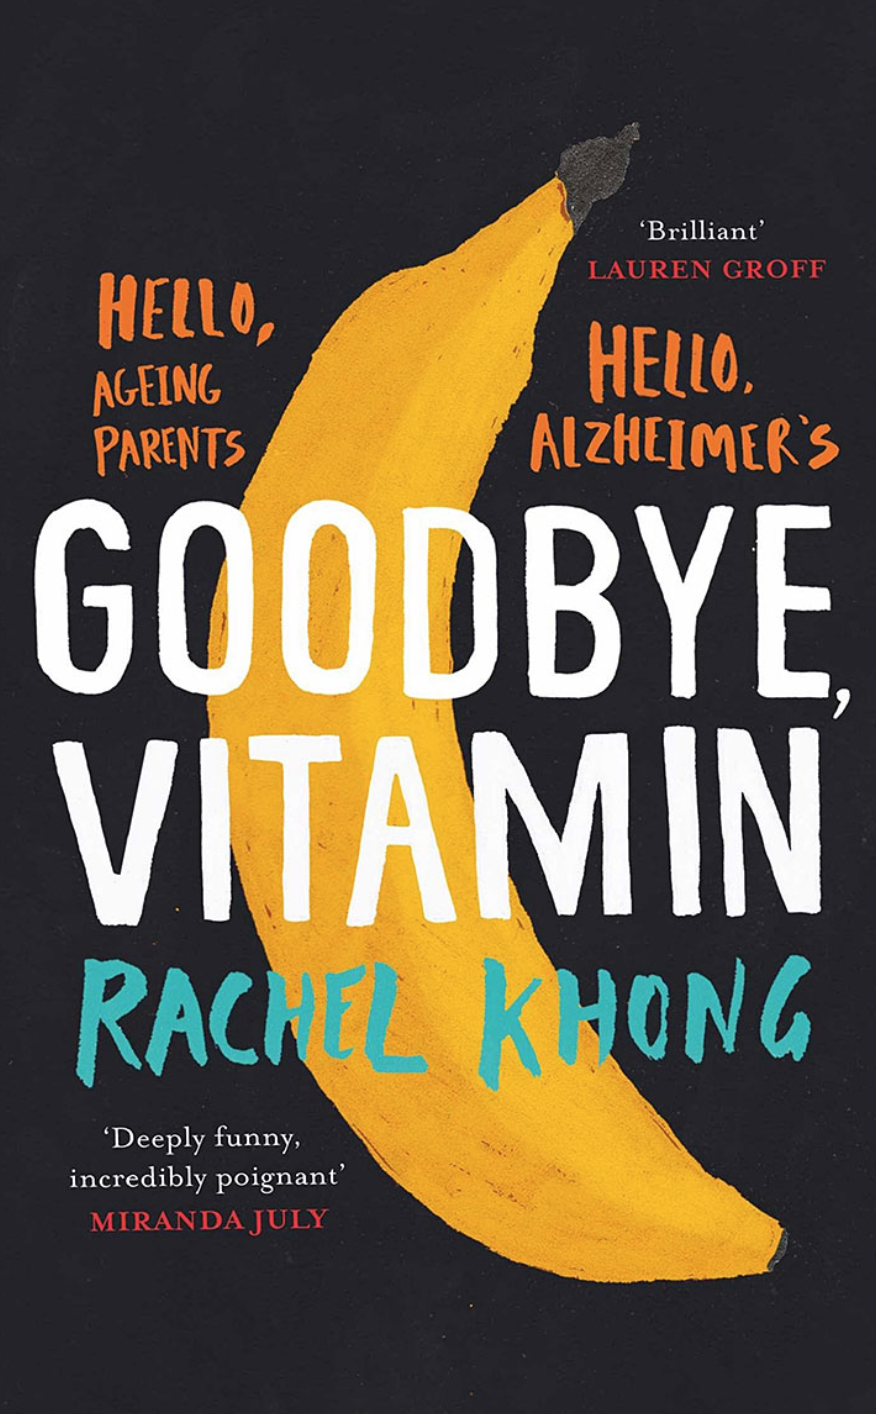 NYT called this a brilliant disquisition on family relationships and adulthood. Set in the Inland Empire, written by the magnificent  Rachel Khong - founder of  The Ruby SF . You can buy it on Amazon  here .